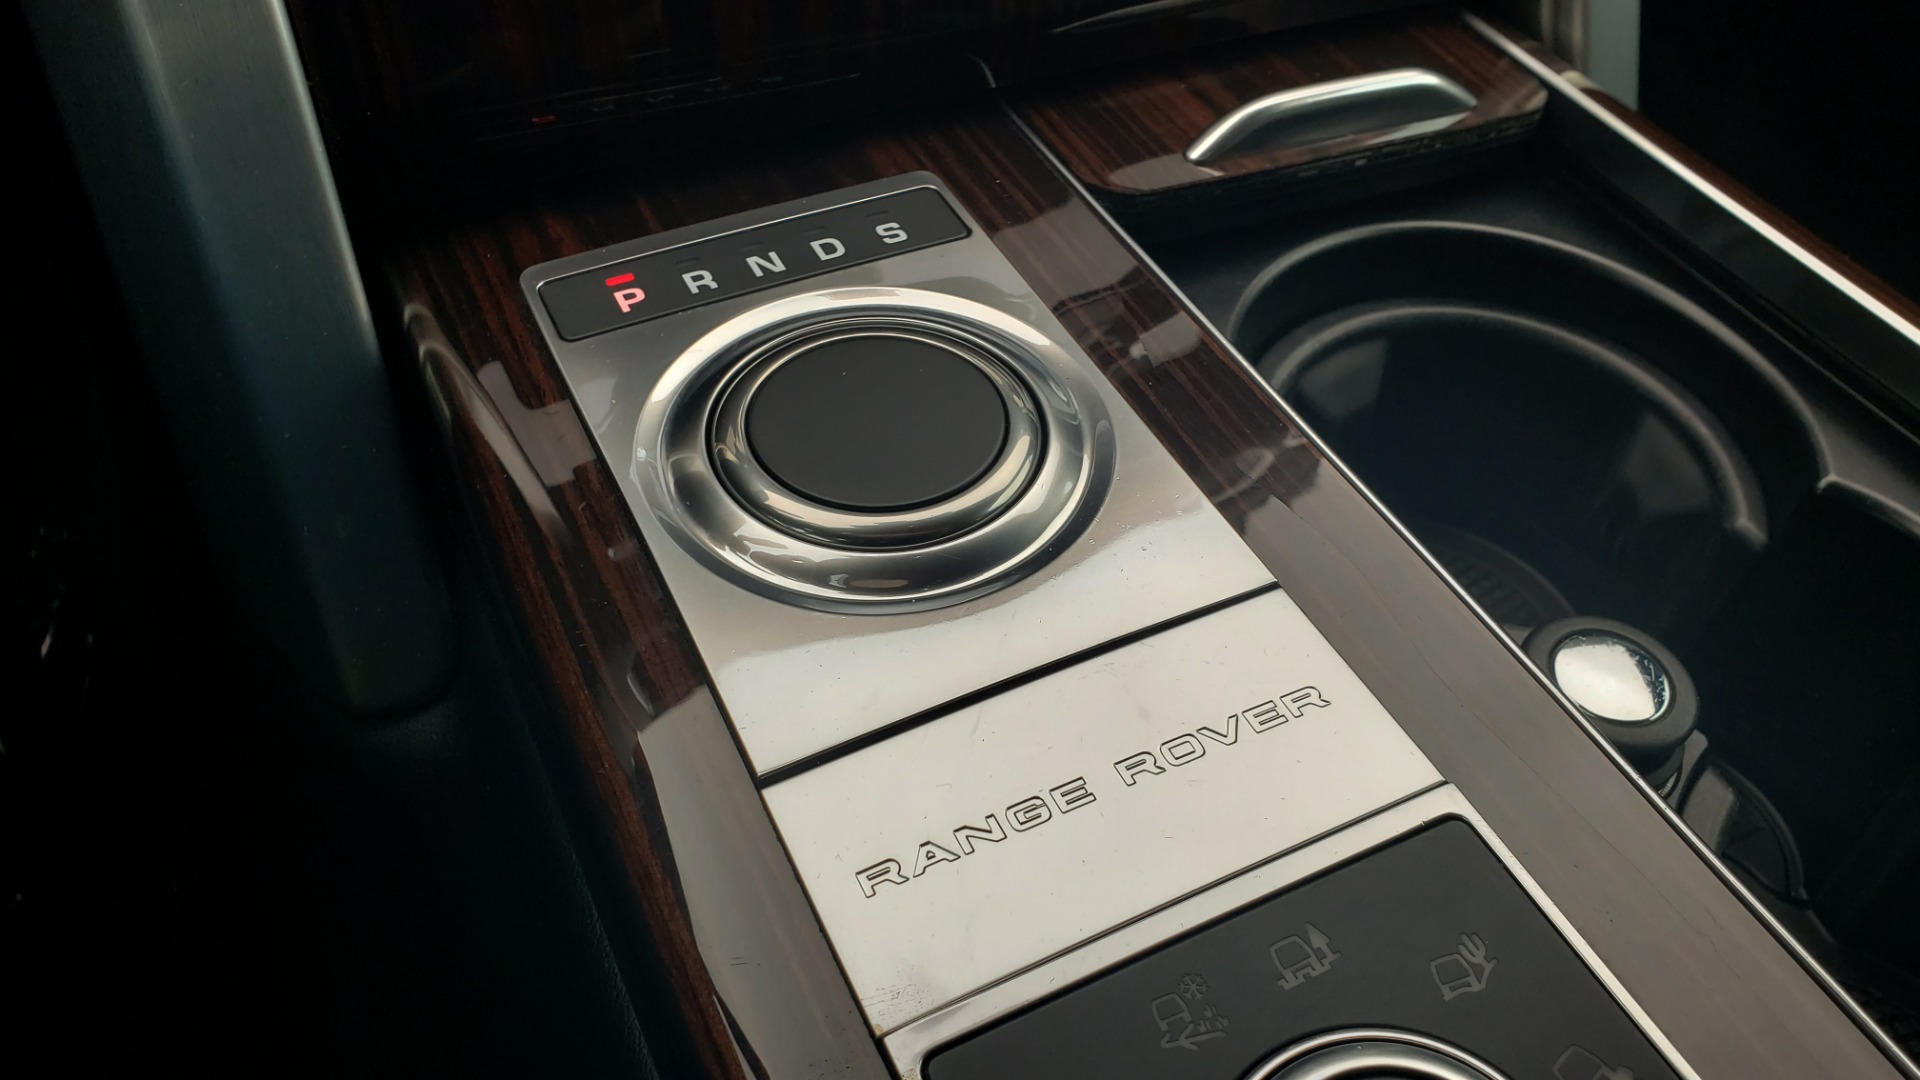 Used 2016 Land Rover Range Rover HSE 3.0L SC V6 / NAV / PANO-ROOF / VENT SEATS / REARVIEW / BLIND SPOT for sale Sold at Formula Imports in Charlotte NC 28227 54